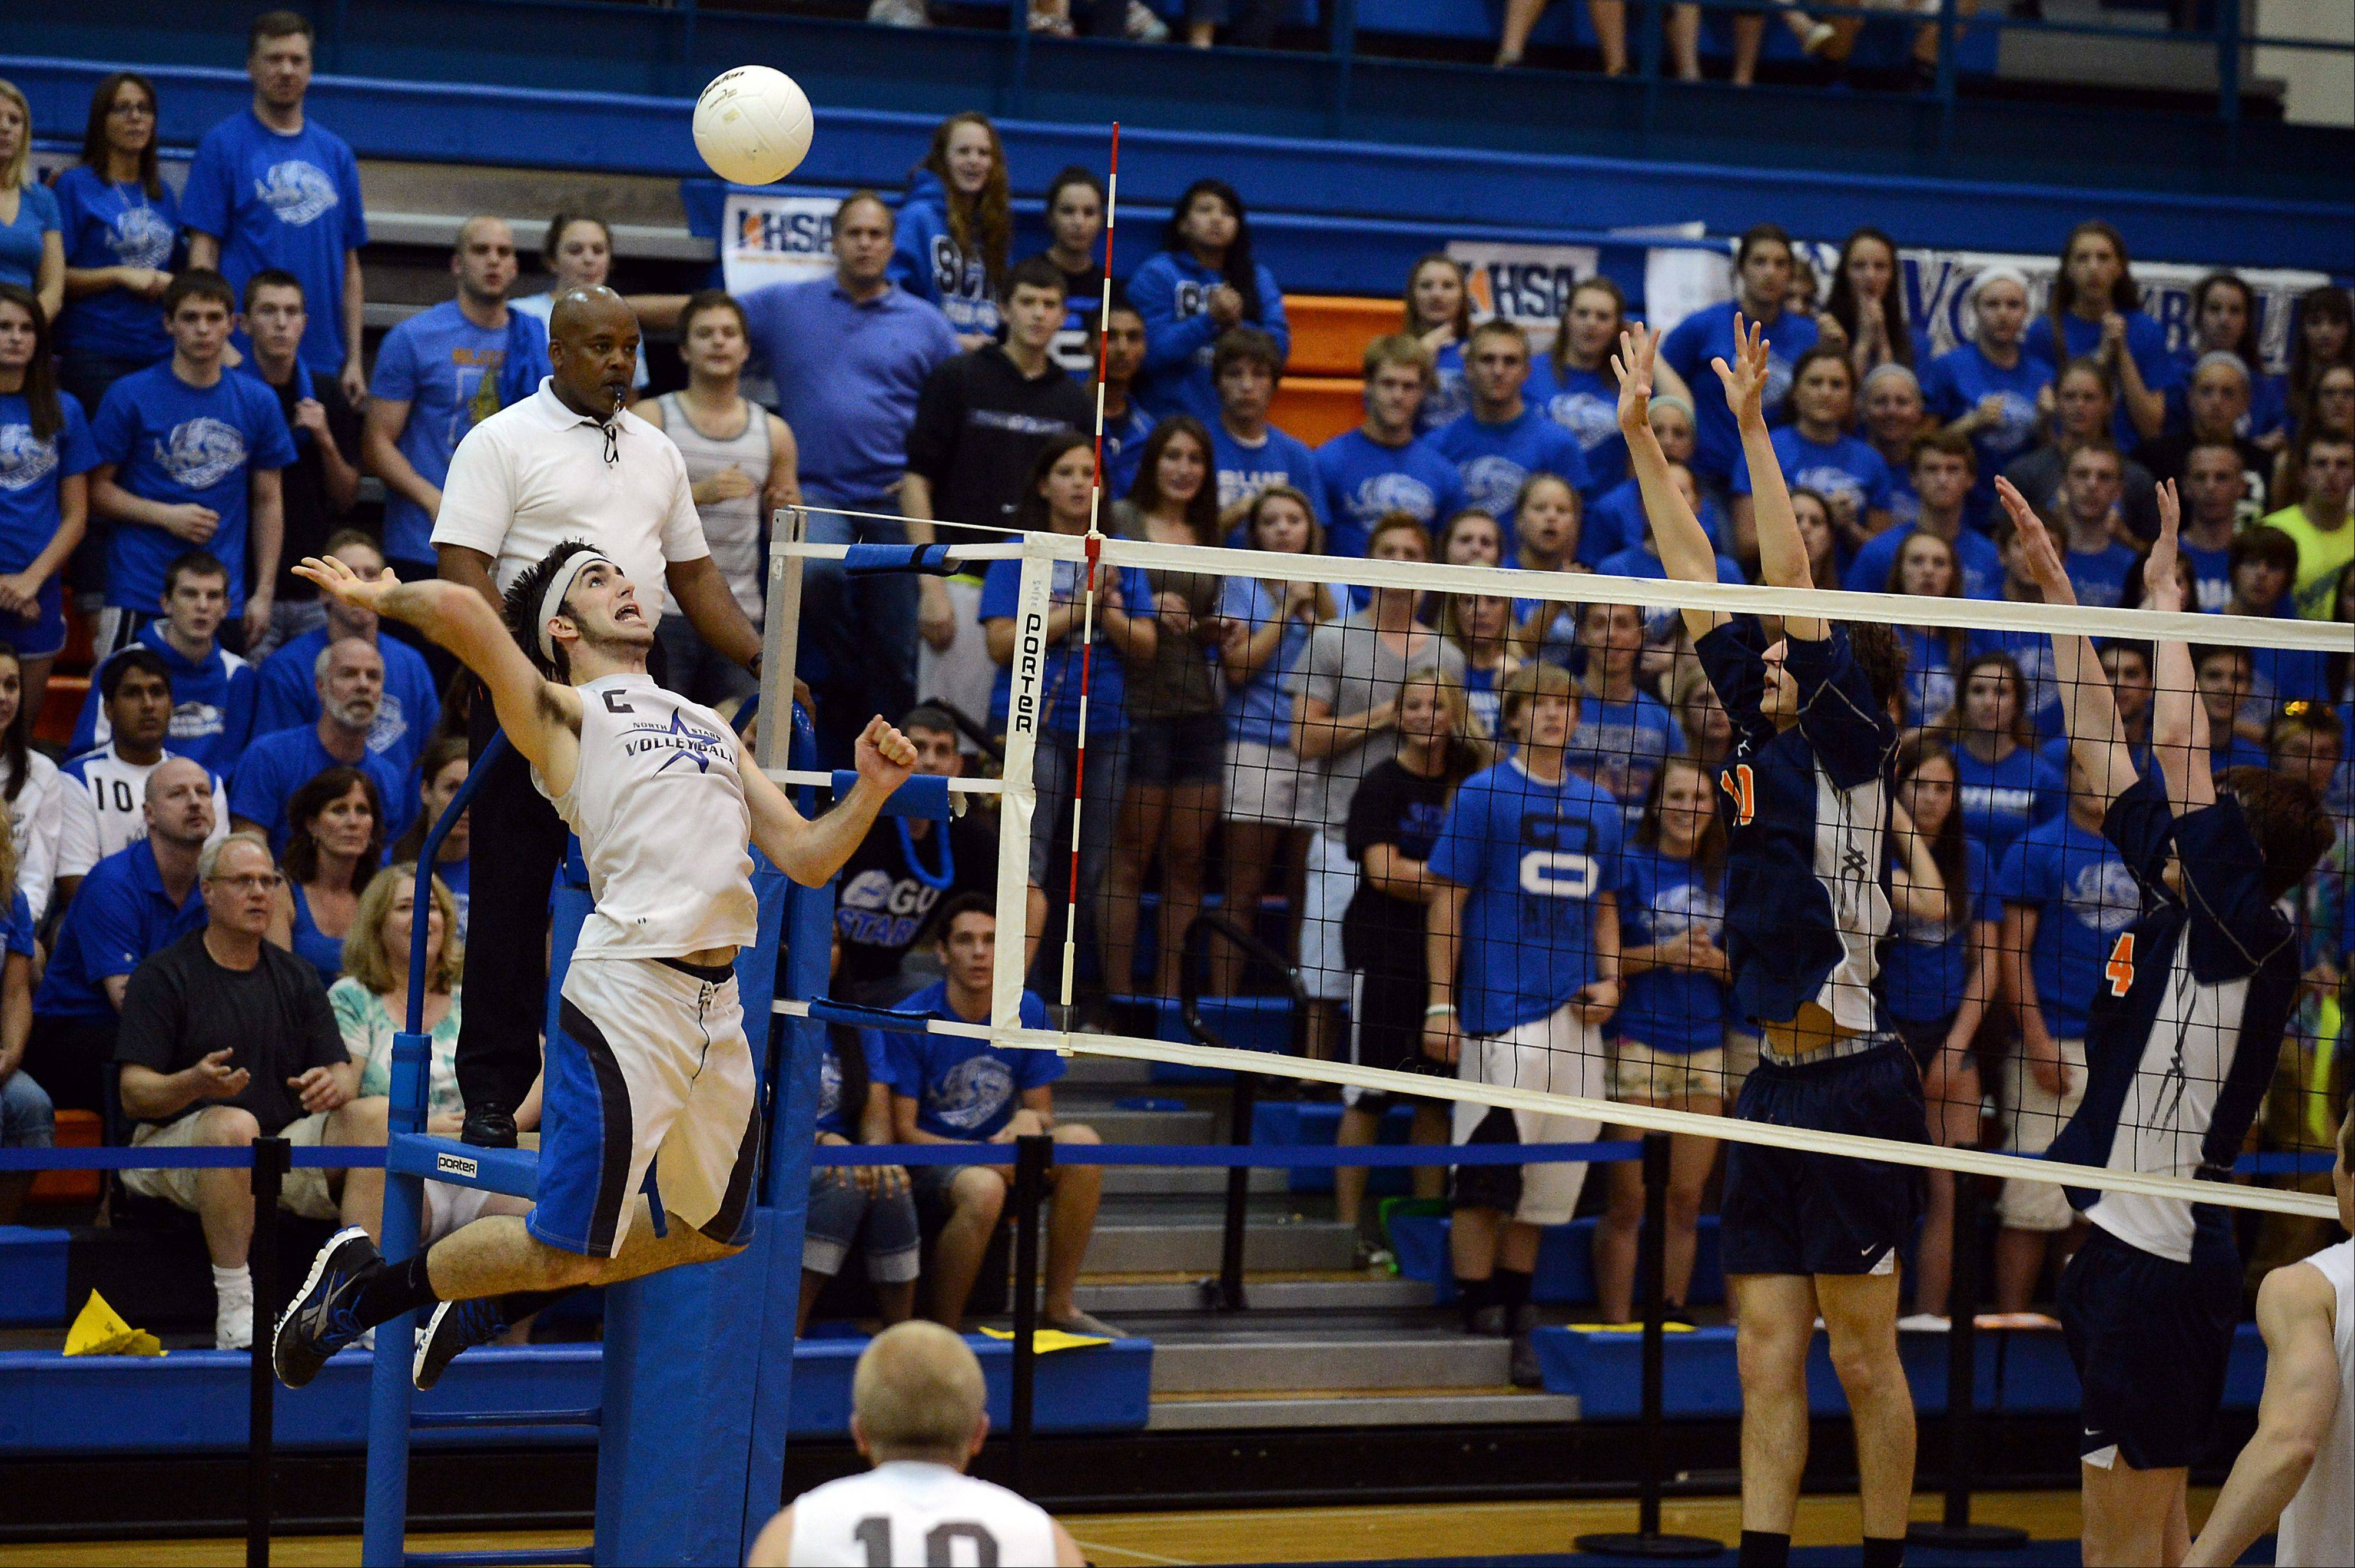 St. Charles North's Johathan Orech spikes the ball past Oak Park-River Forest defense in the best of three games at the boys volleyball state finals 2013 at Hoffman Estates High School on Friday.